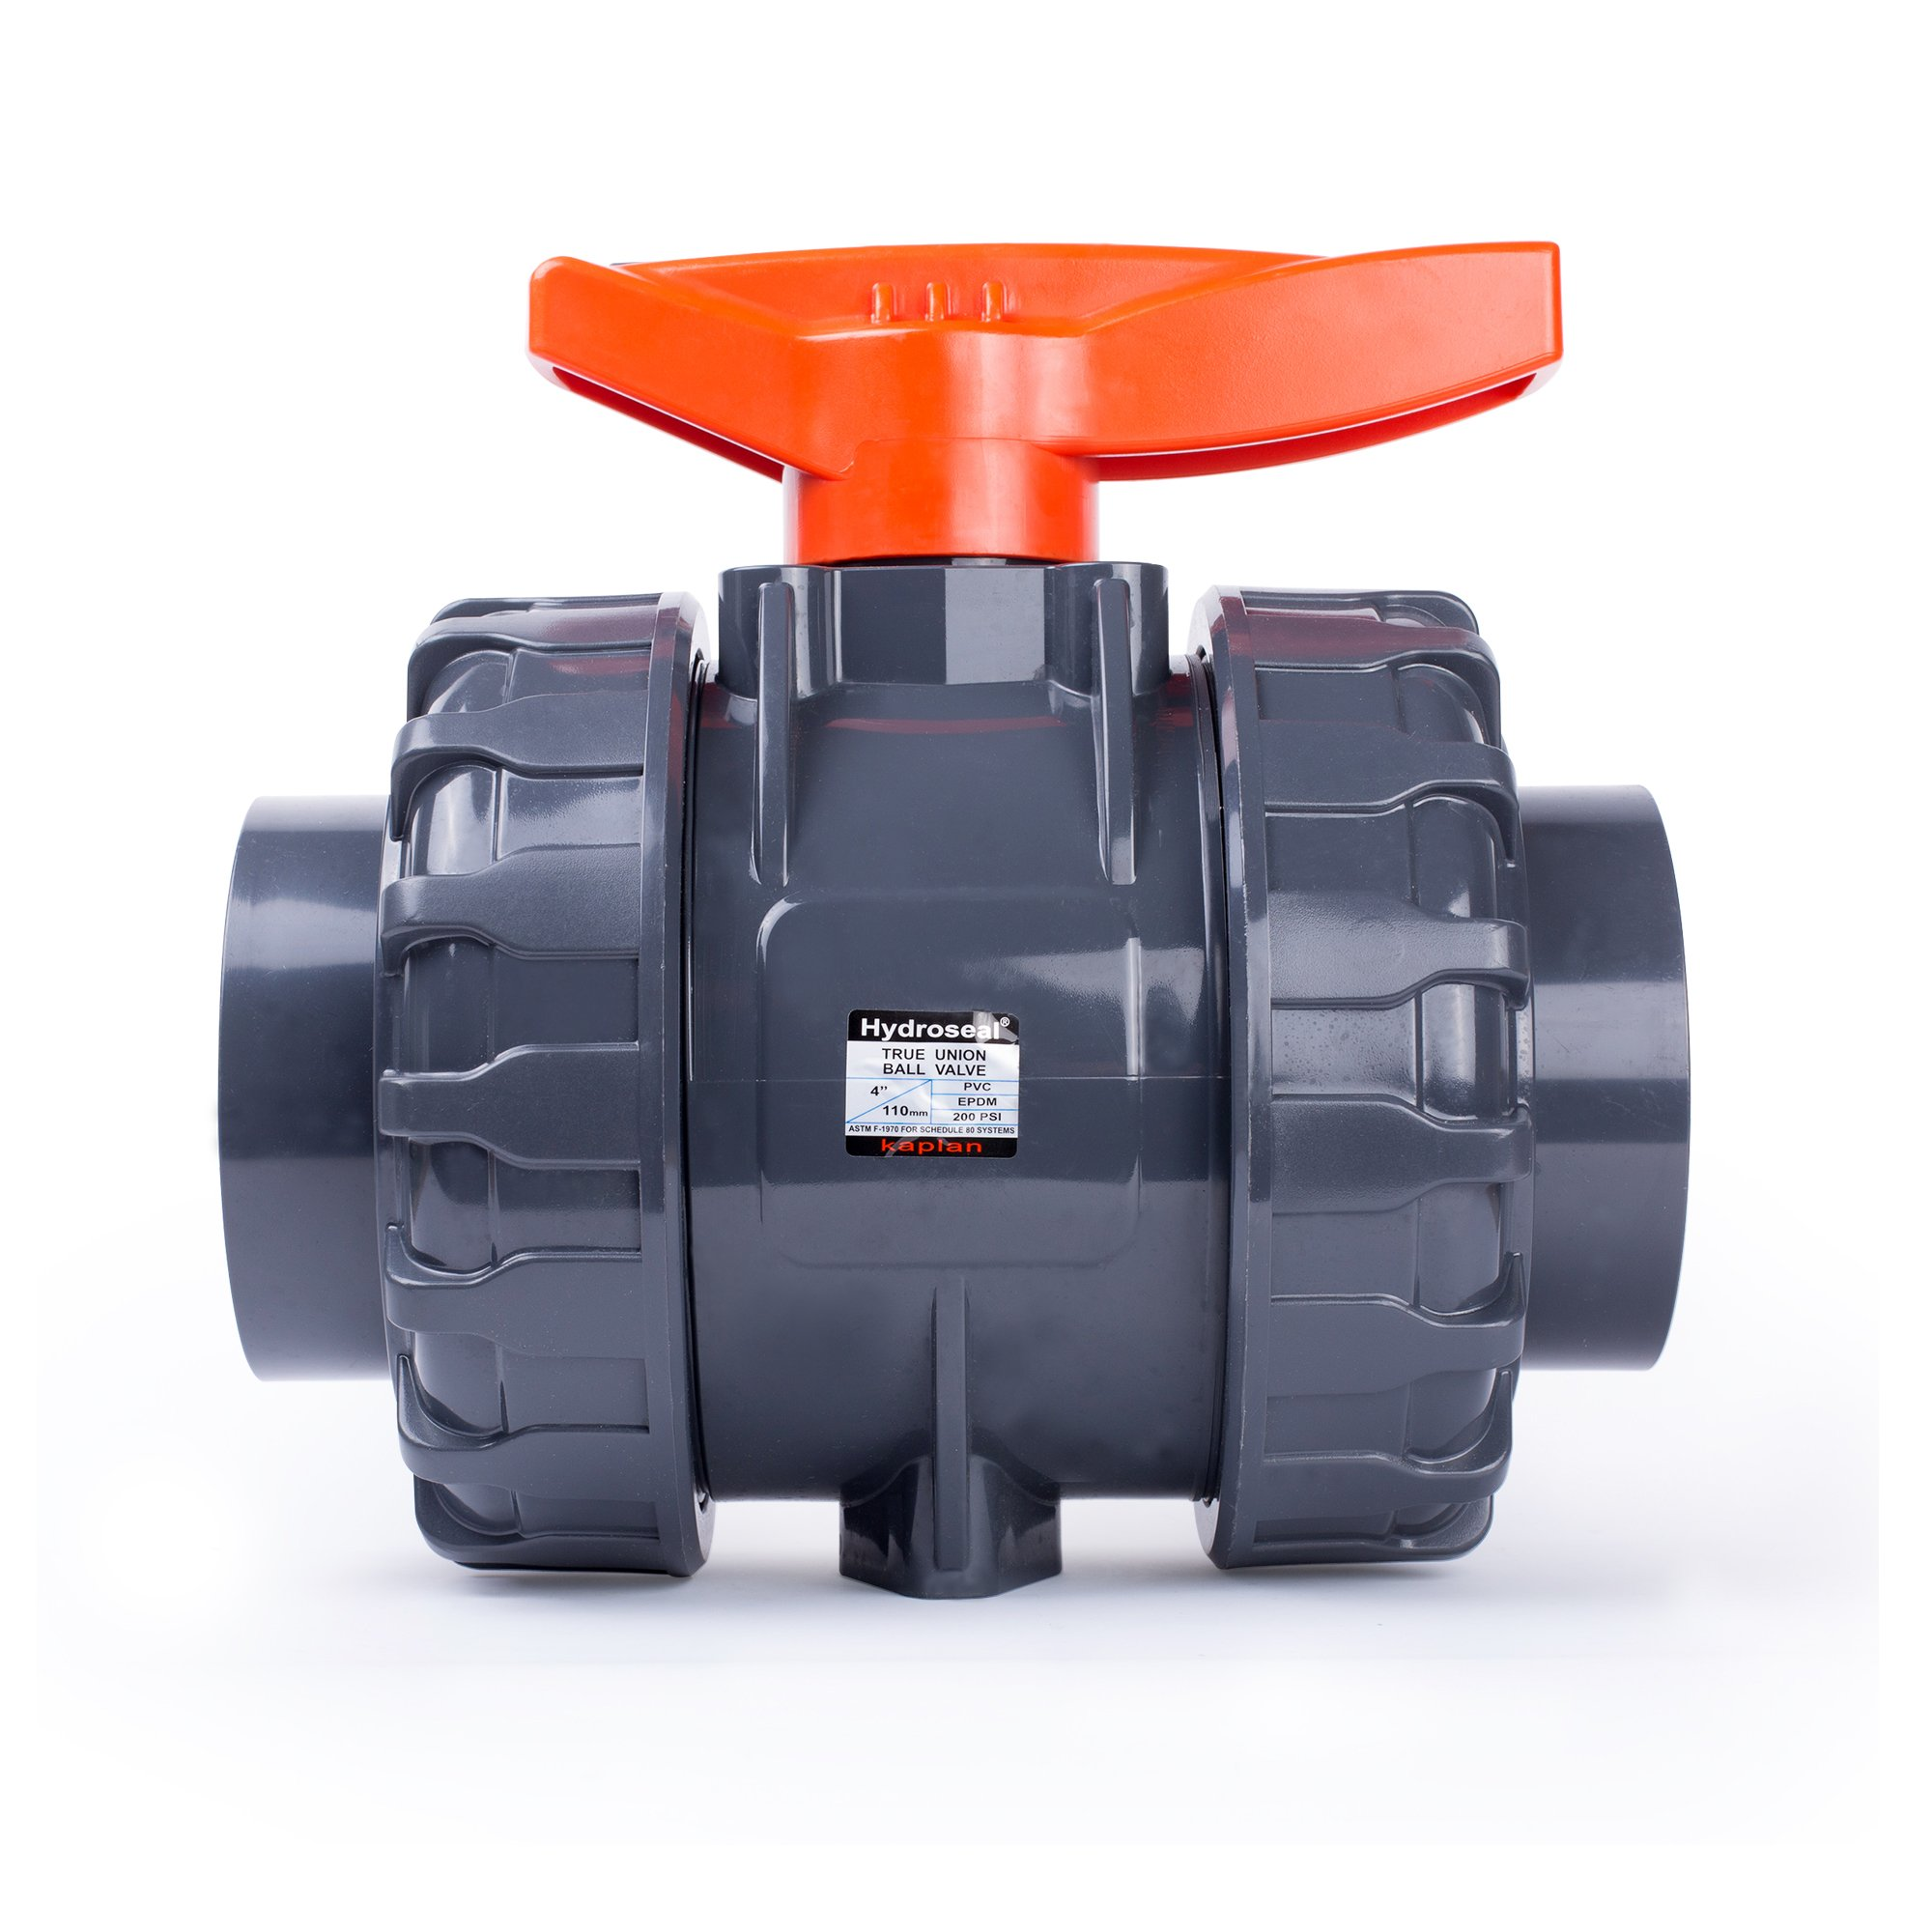 HYDROSEAL Kaplan 4'' PVC True Union Ball Valve with Full Port, ASTM F1970, EPDM O-Rings and Reversible PTFE Seats, Rated at 200 PSI @73F, Gray, 4 inch Socket (4'')